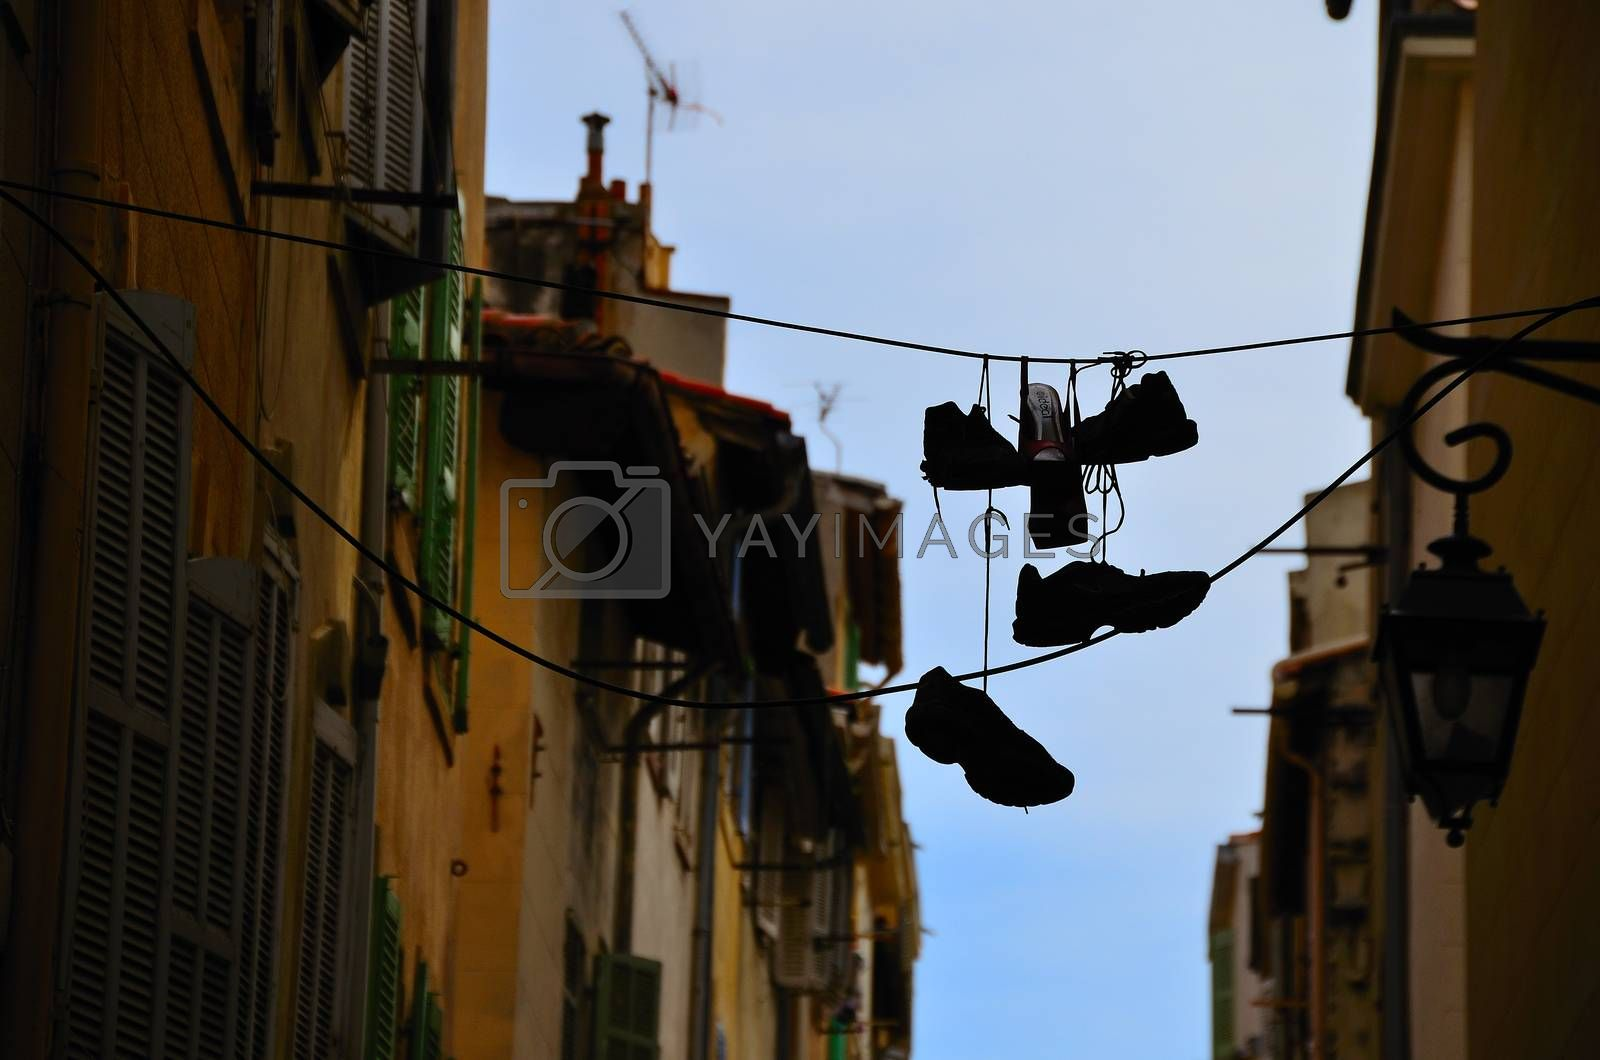 shoes hanging between houses in the city of marseille